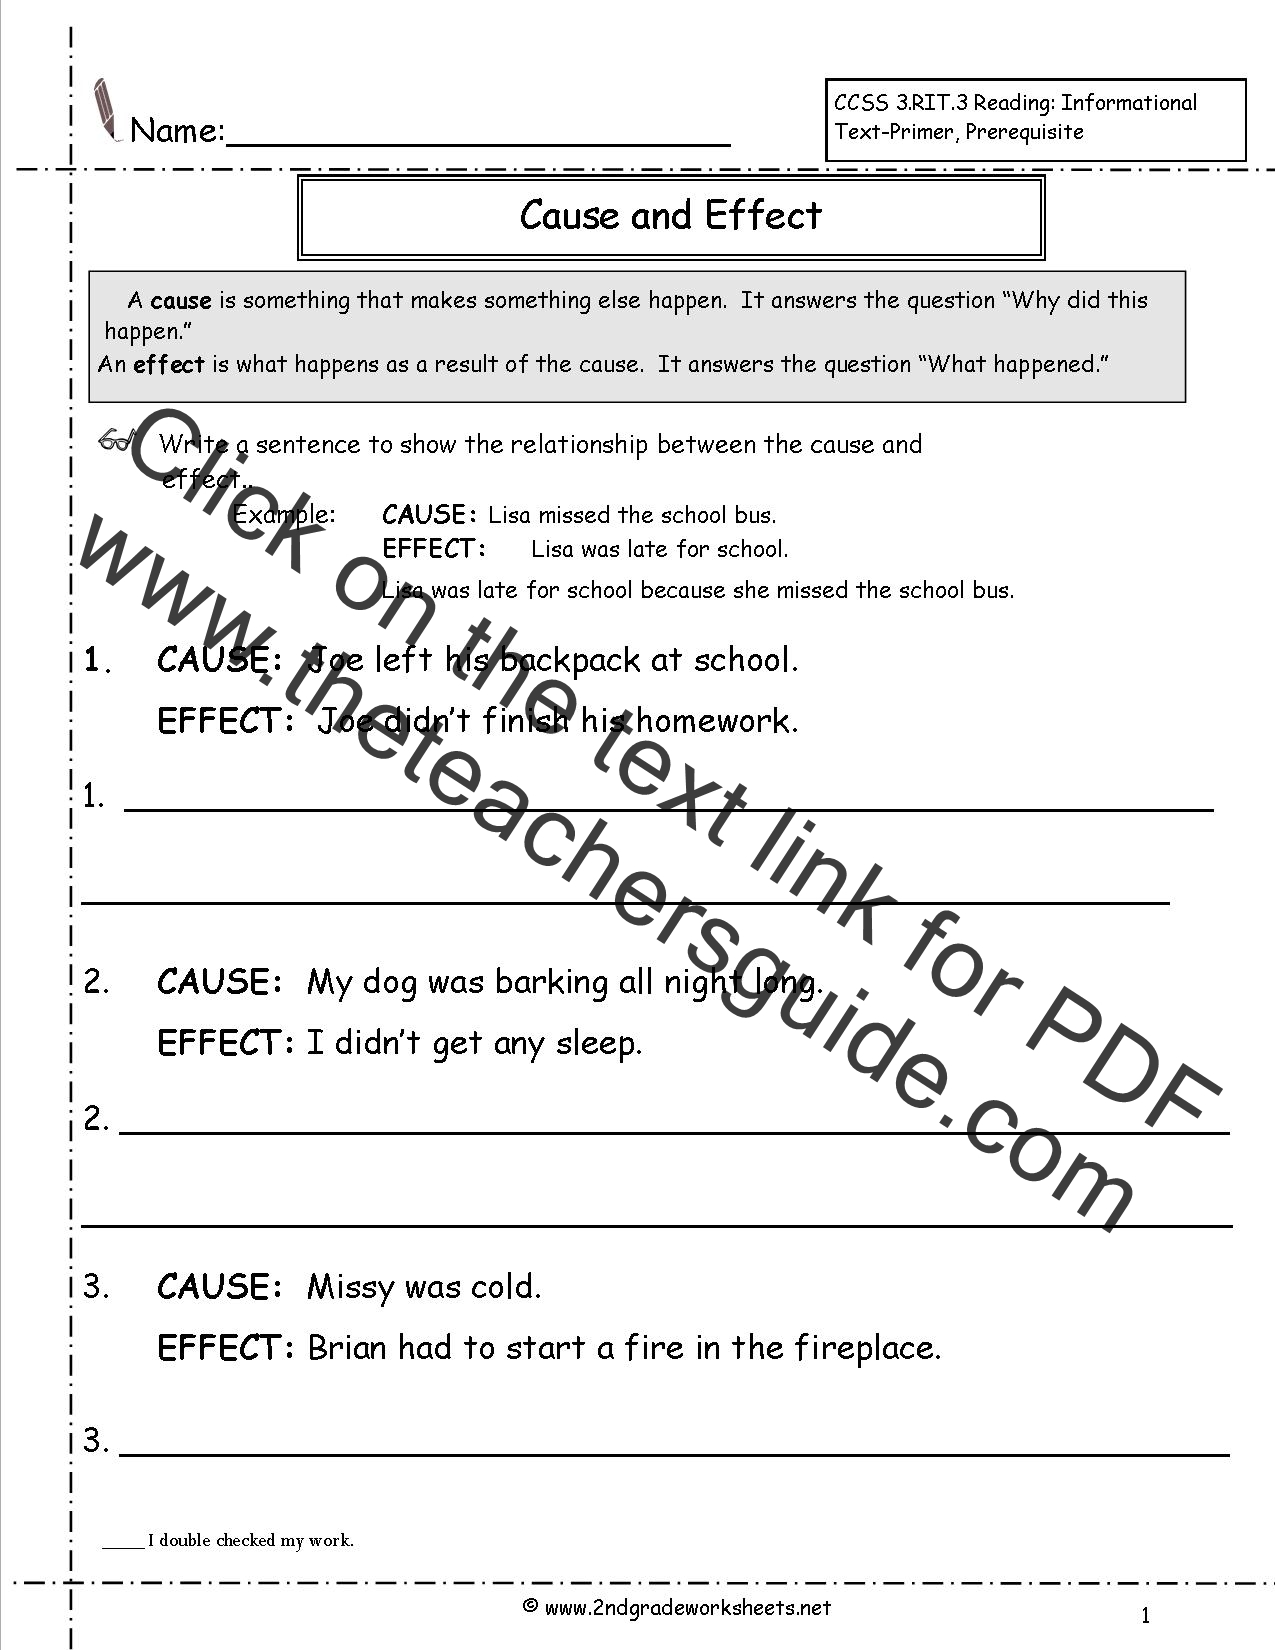 Worksheets Question Answer Relationship Worksheet